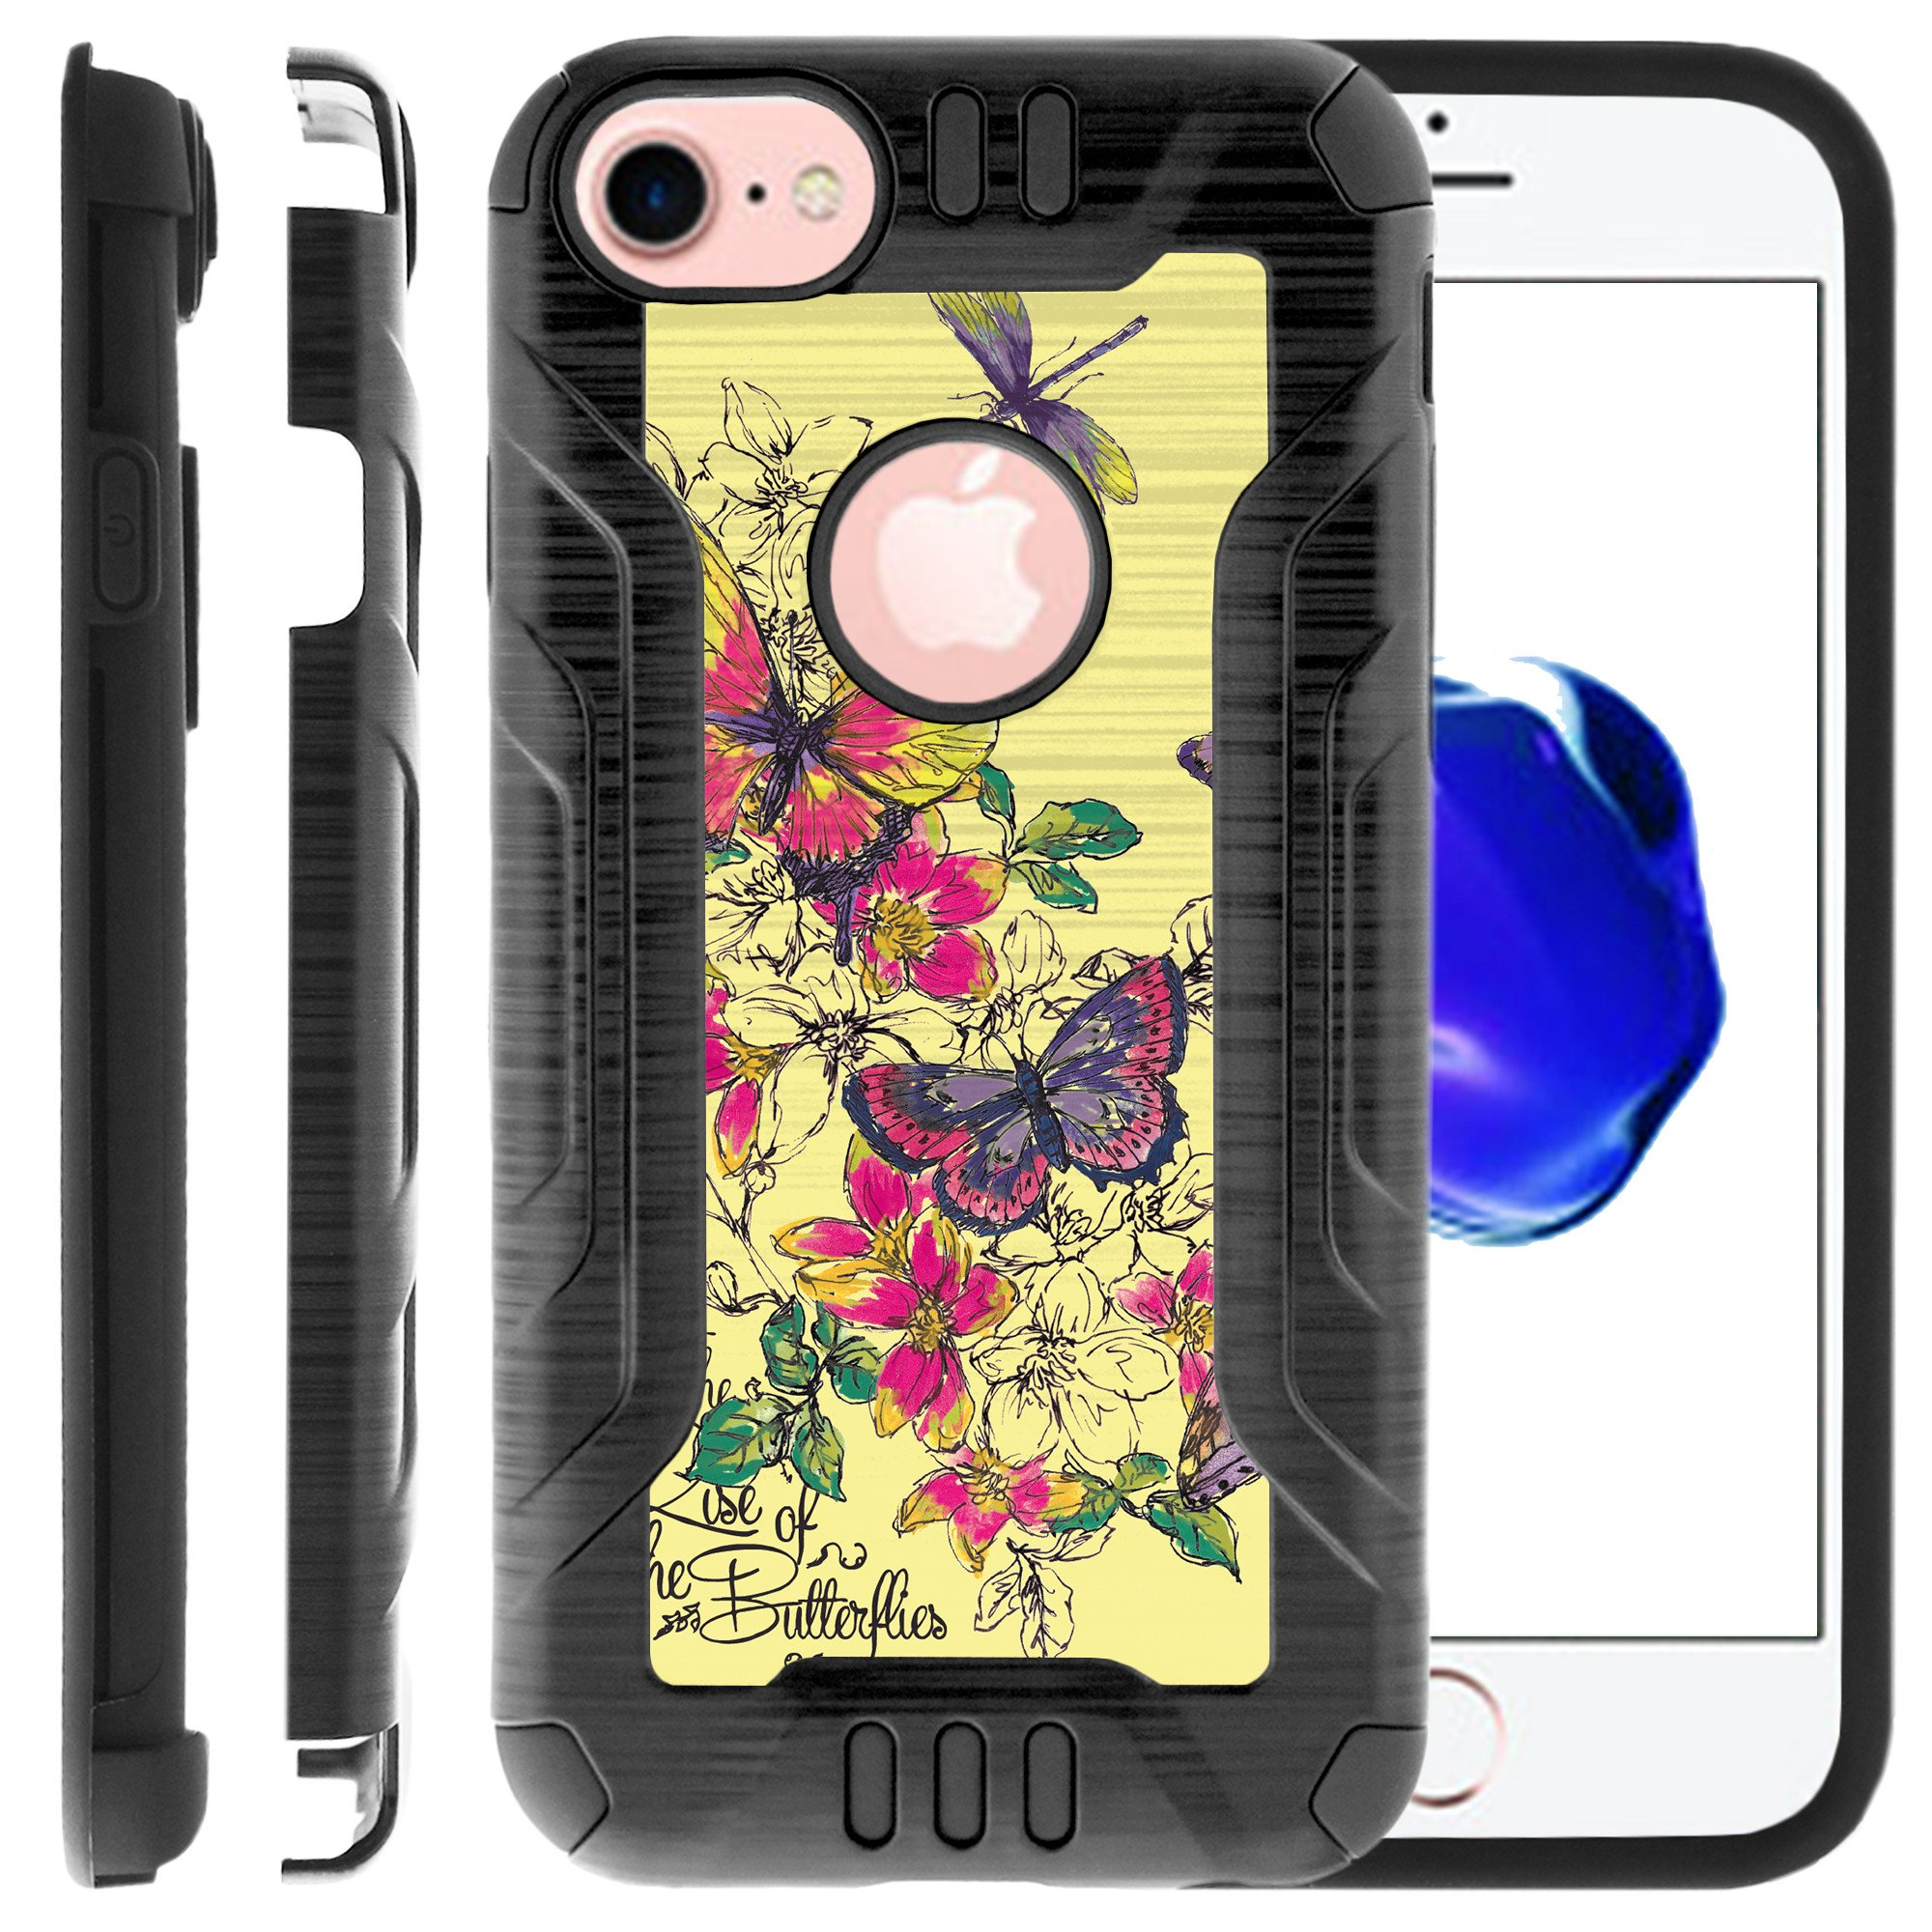 Apple iPhone 6 | 6s Phone Case, Dual Layer Case for iPhone 6 [PRO-Tech Series] Rigid Hard Plastic Shell TPU Bumper Corners with Design by MINITURTLE - Yellow Butterflies